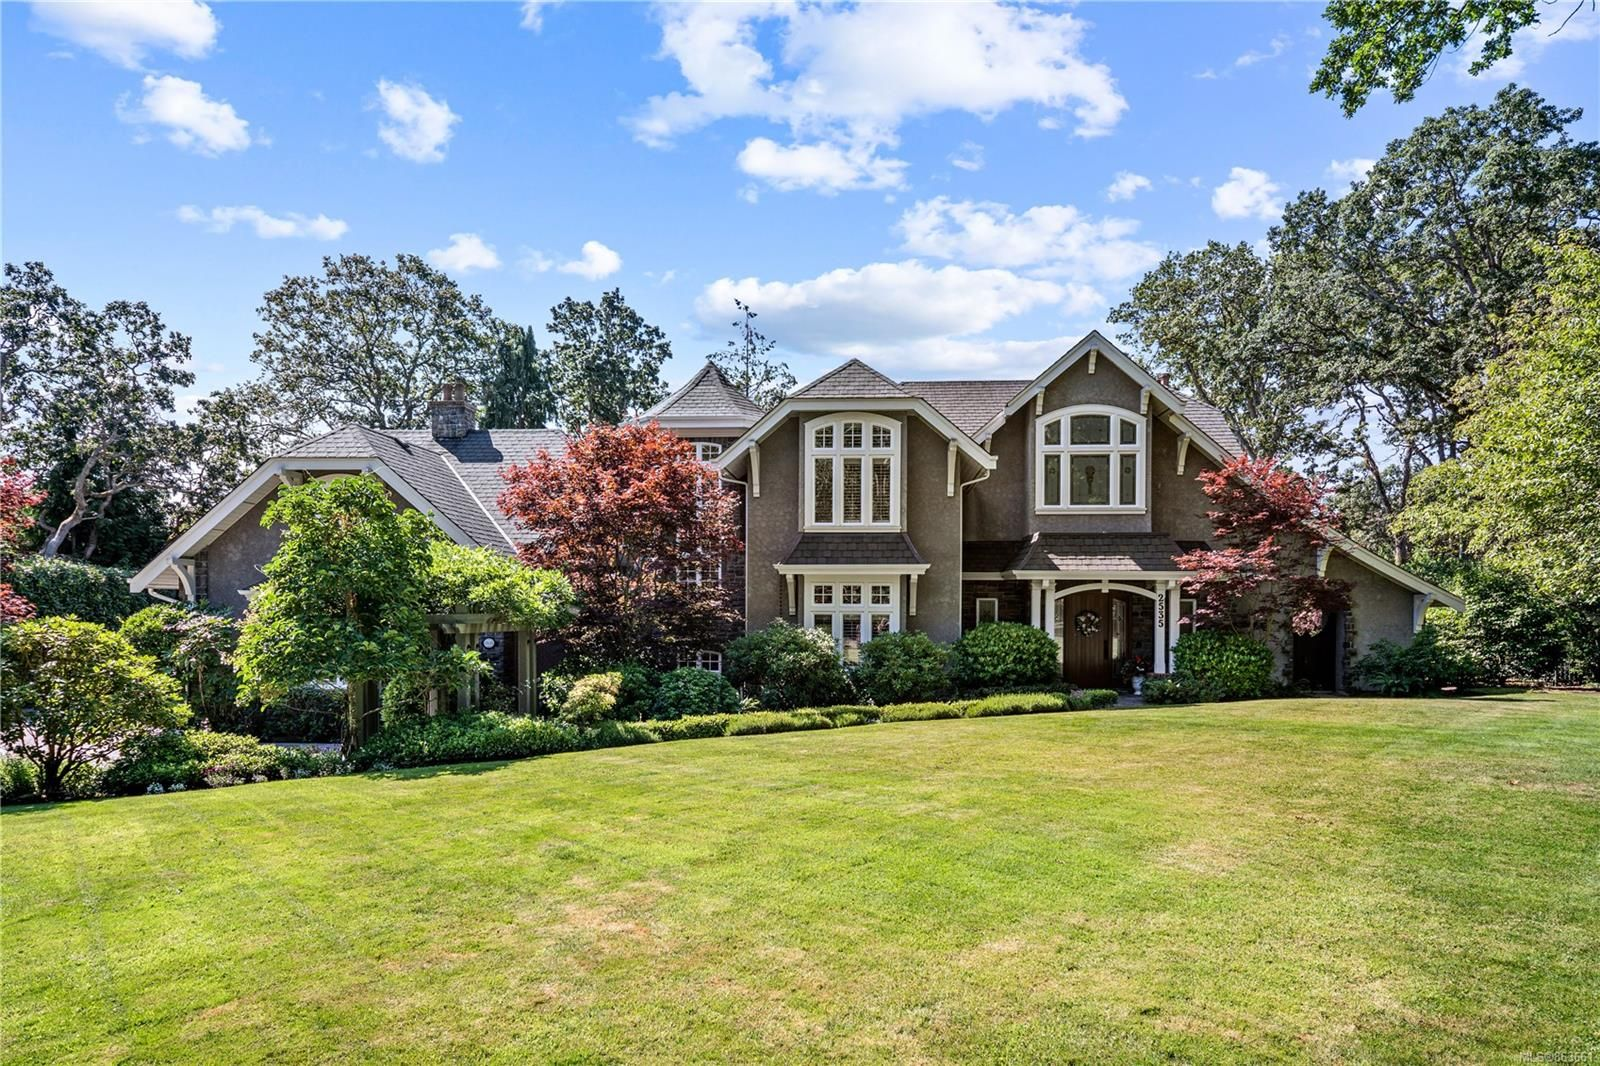 Main Photo: 2535 Cotswold Rd in : OB Uplands House for sale (Oak Bay)  : MLS®# 863661